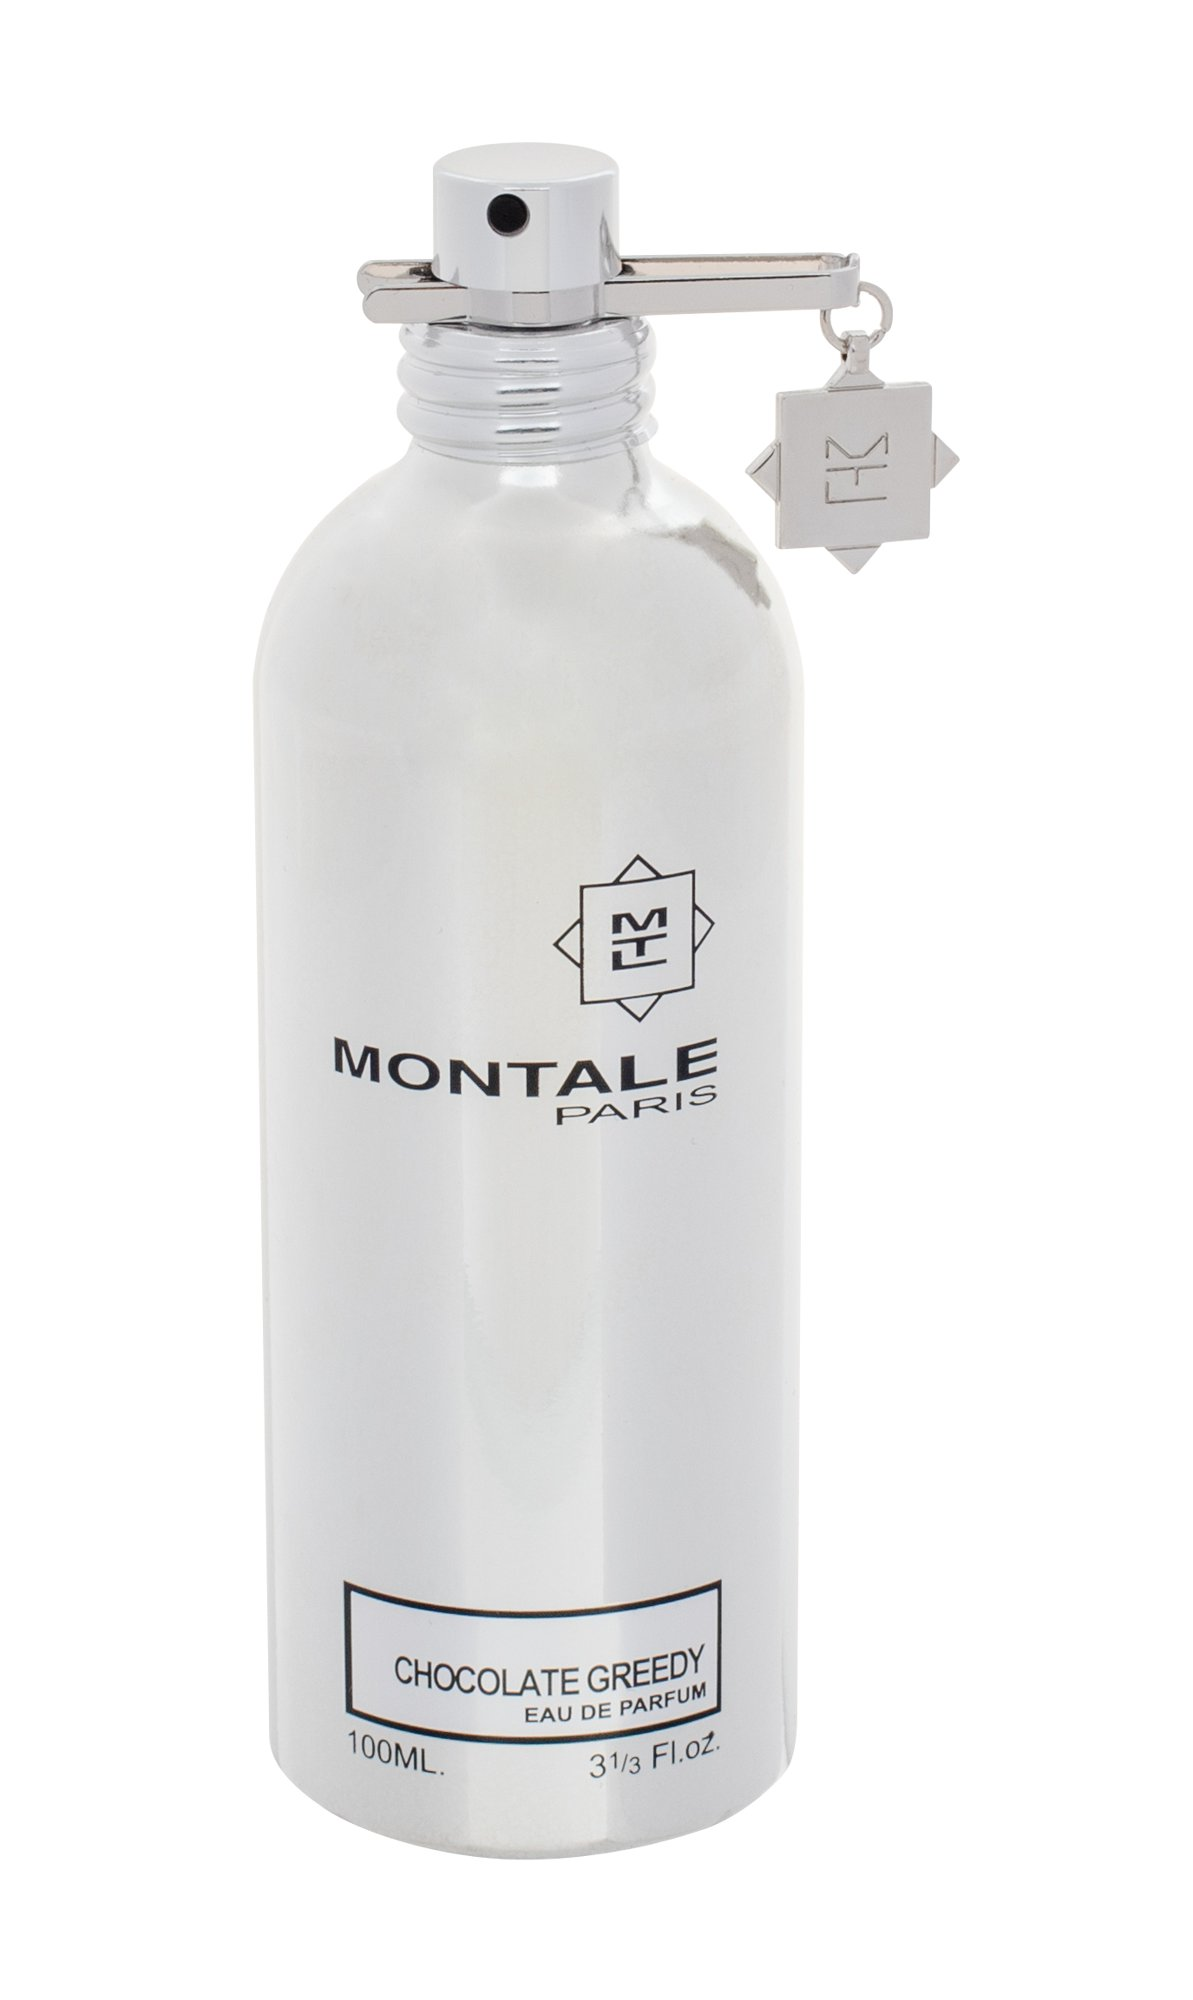 Montale Paris Chocolate Greedy, edp 100ml